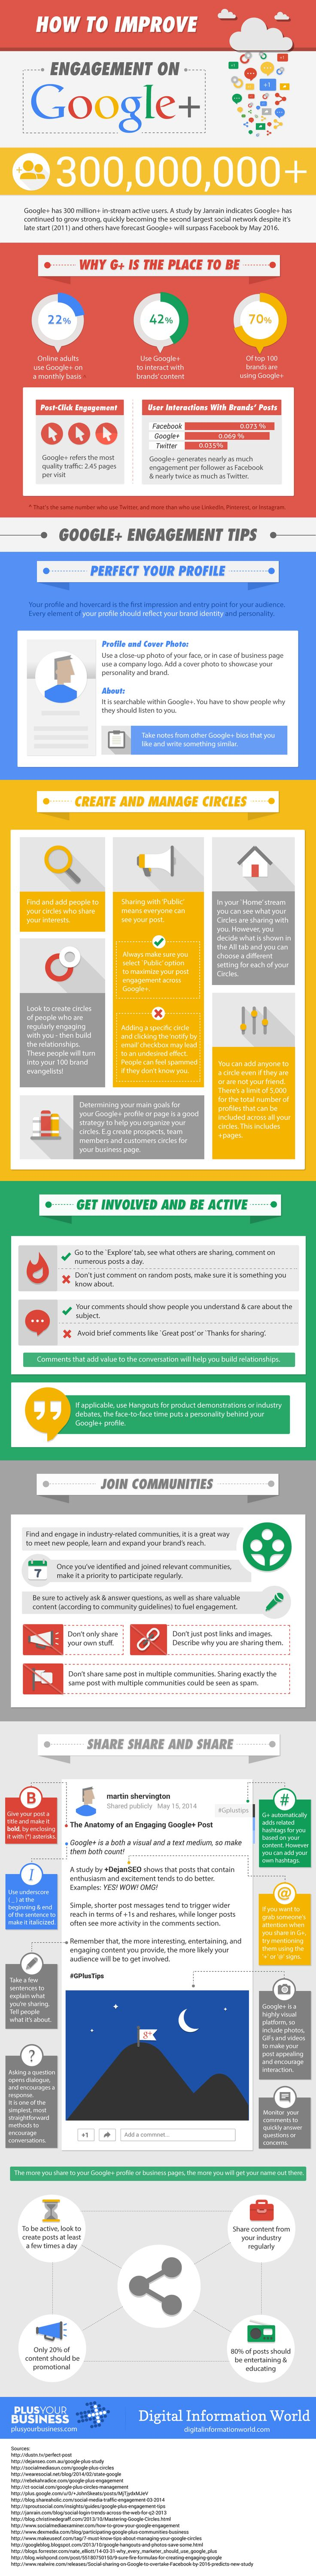 Improve Engagement for Google Plus Marketing. Much of Google Plus Marketing is about 'engagement' turned into action, as such let's kick out with an #infographic that will really help your Google+ presence skyrocket!